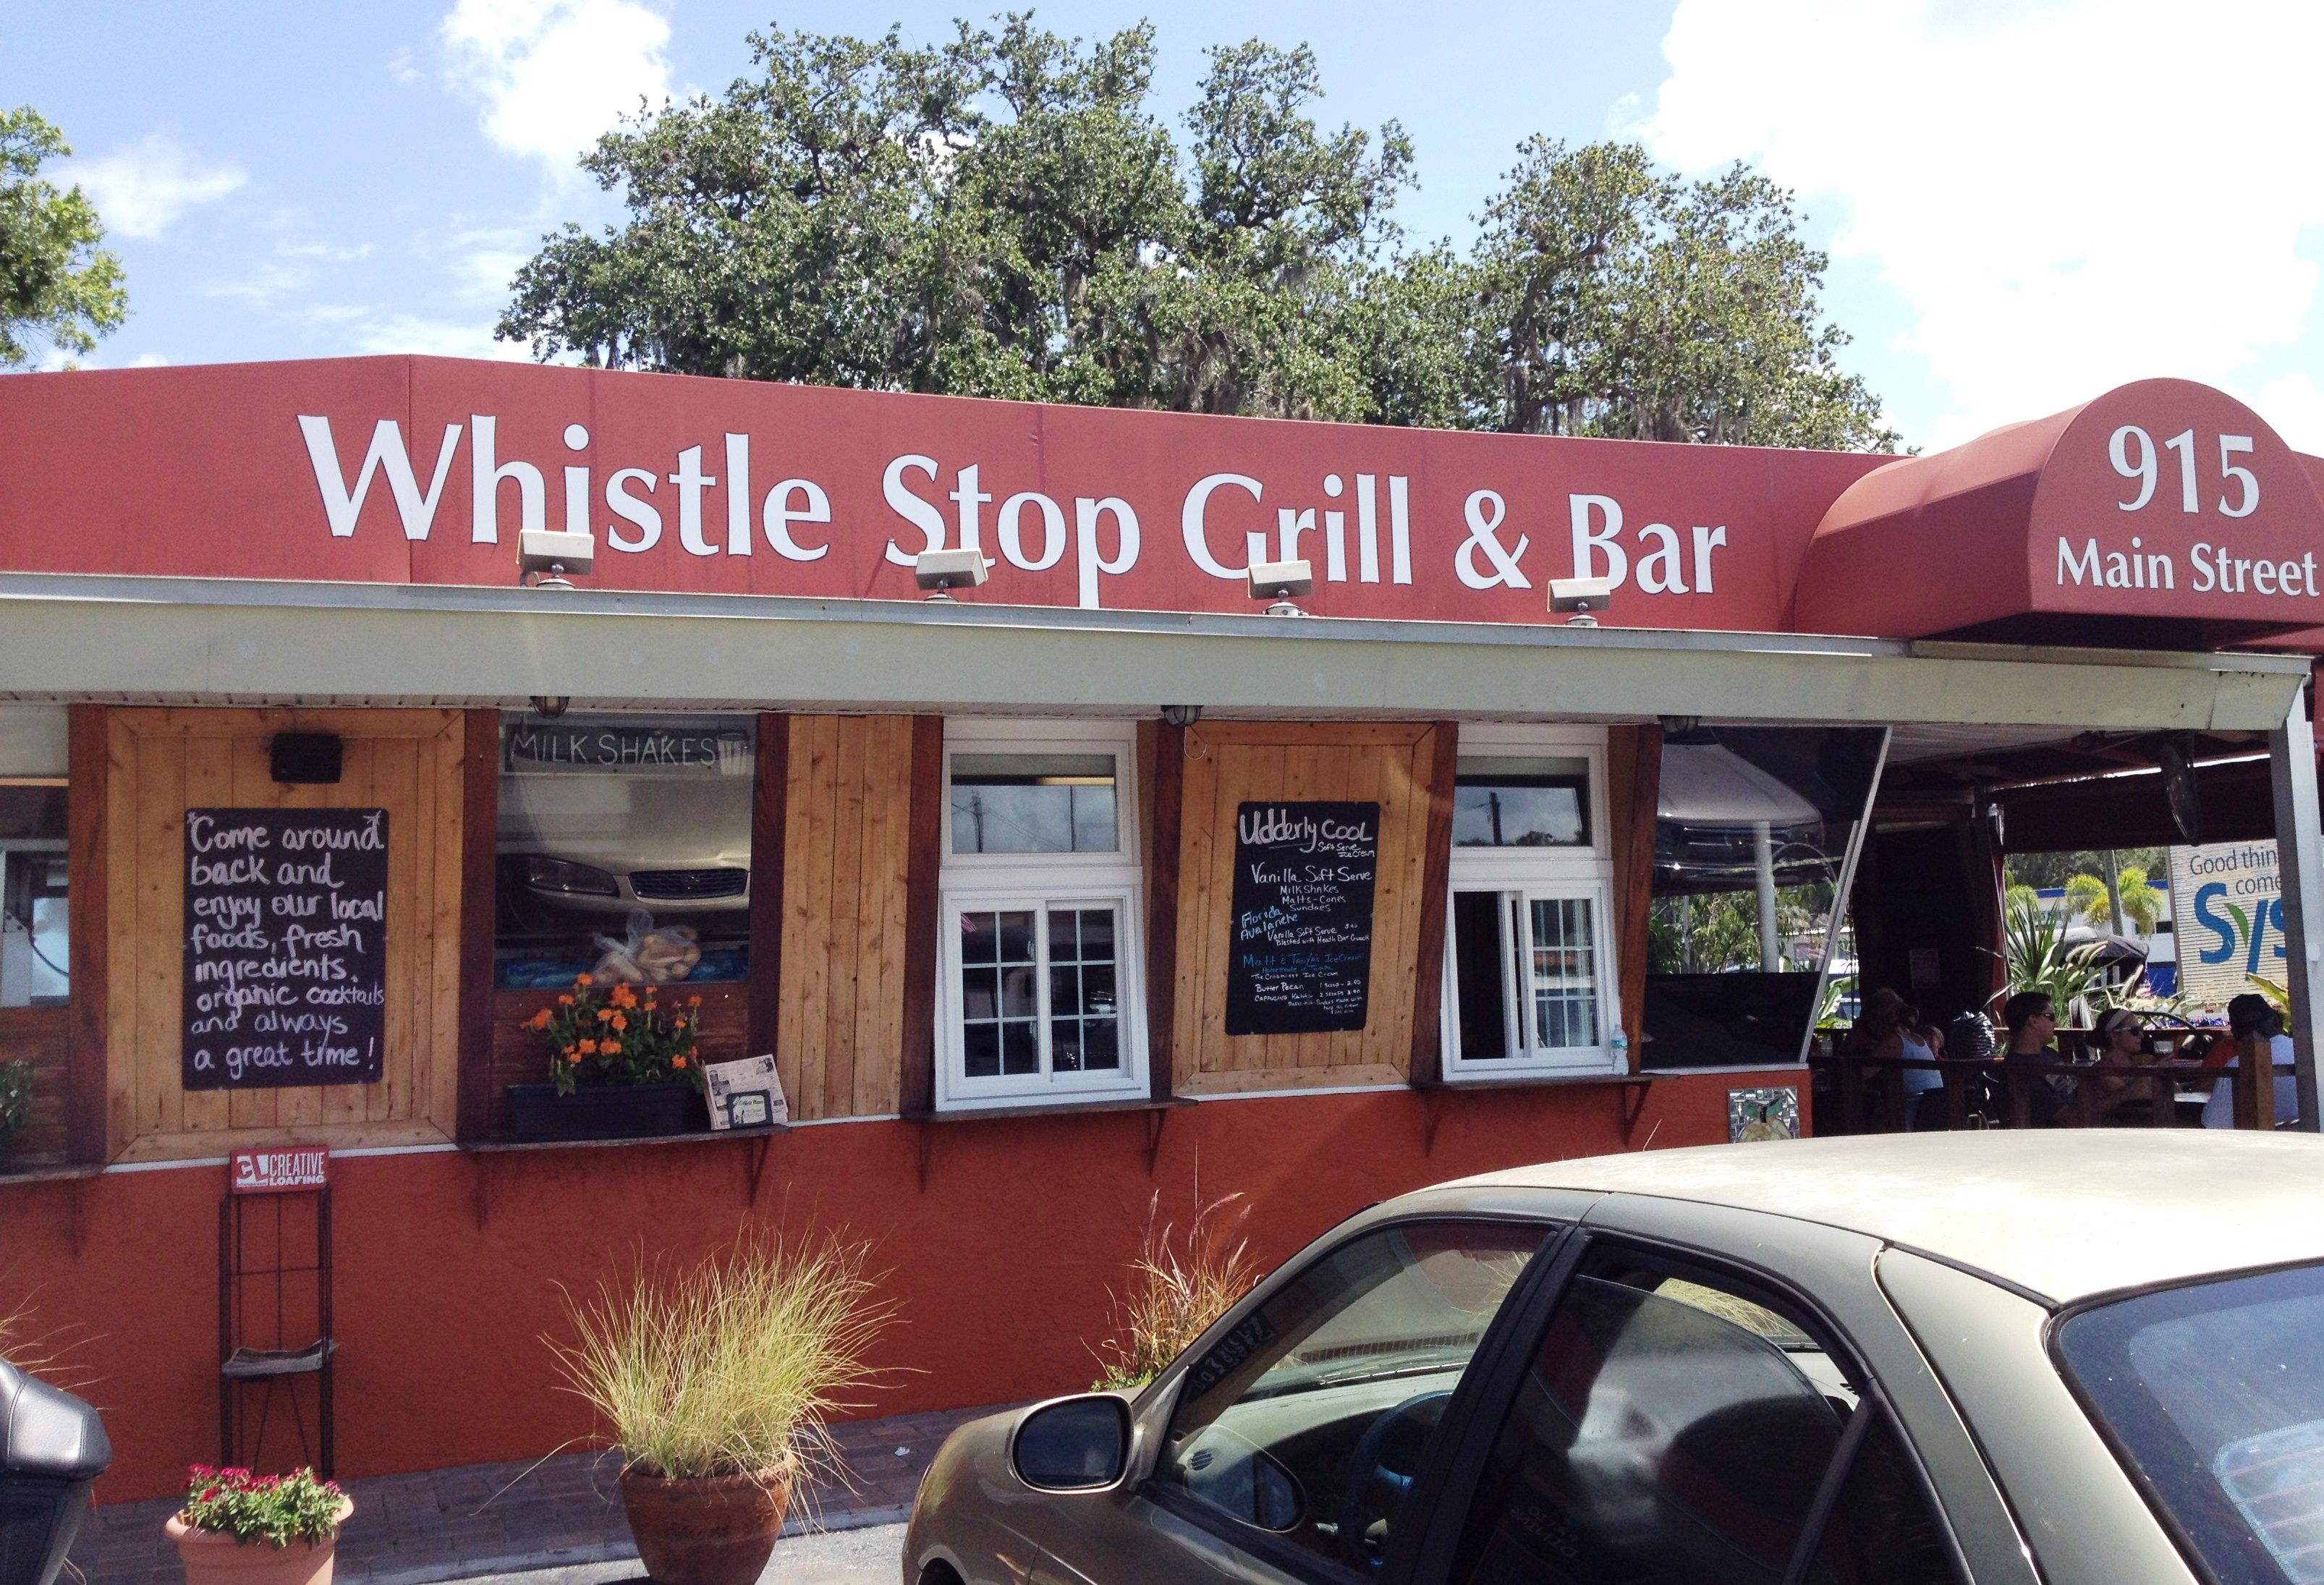 Whistle Stop Grill & Bar home of the fried green tomato